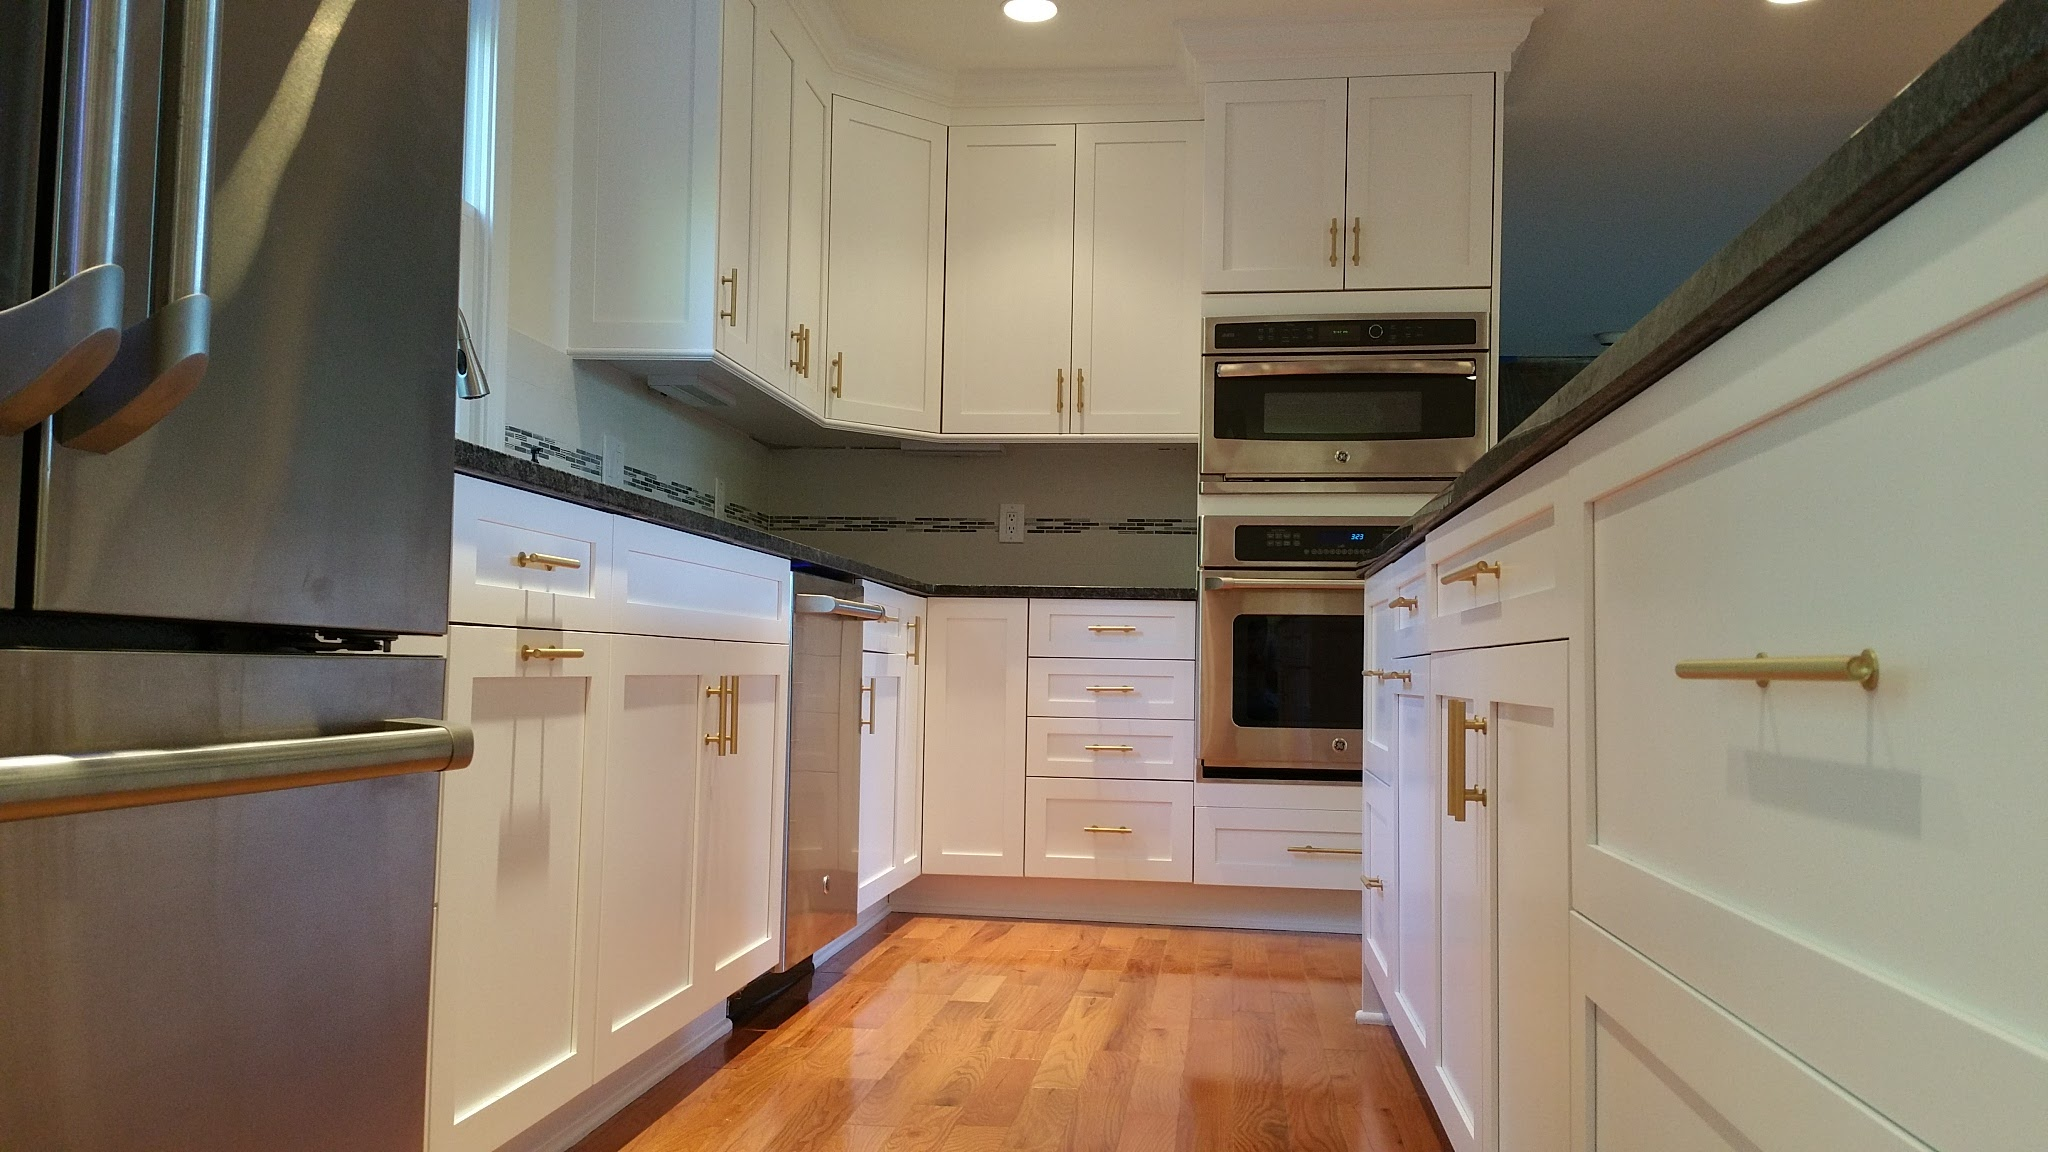 finishes queenstown farm gray general cabinet cabinets painting paint milk sink up painted close with paintingkitchencabinets kitchen